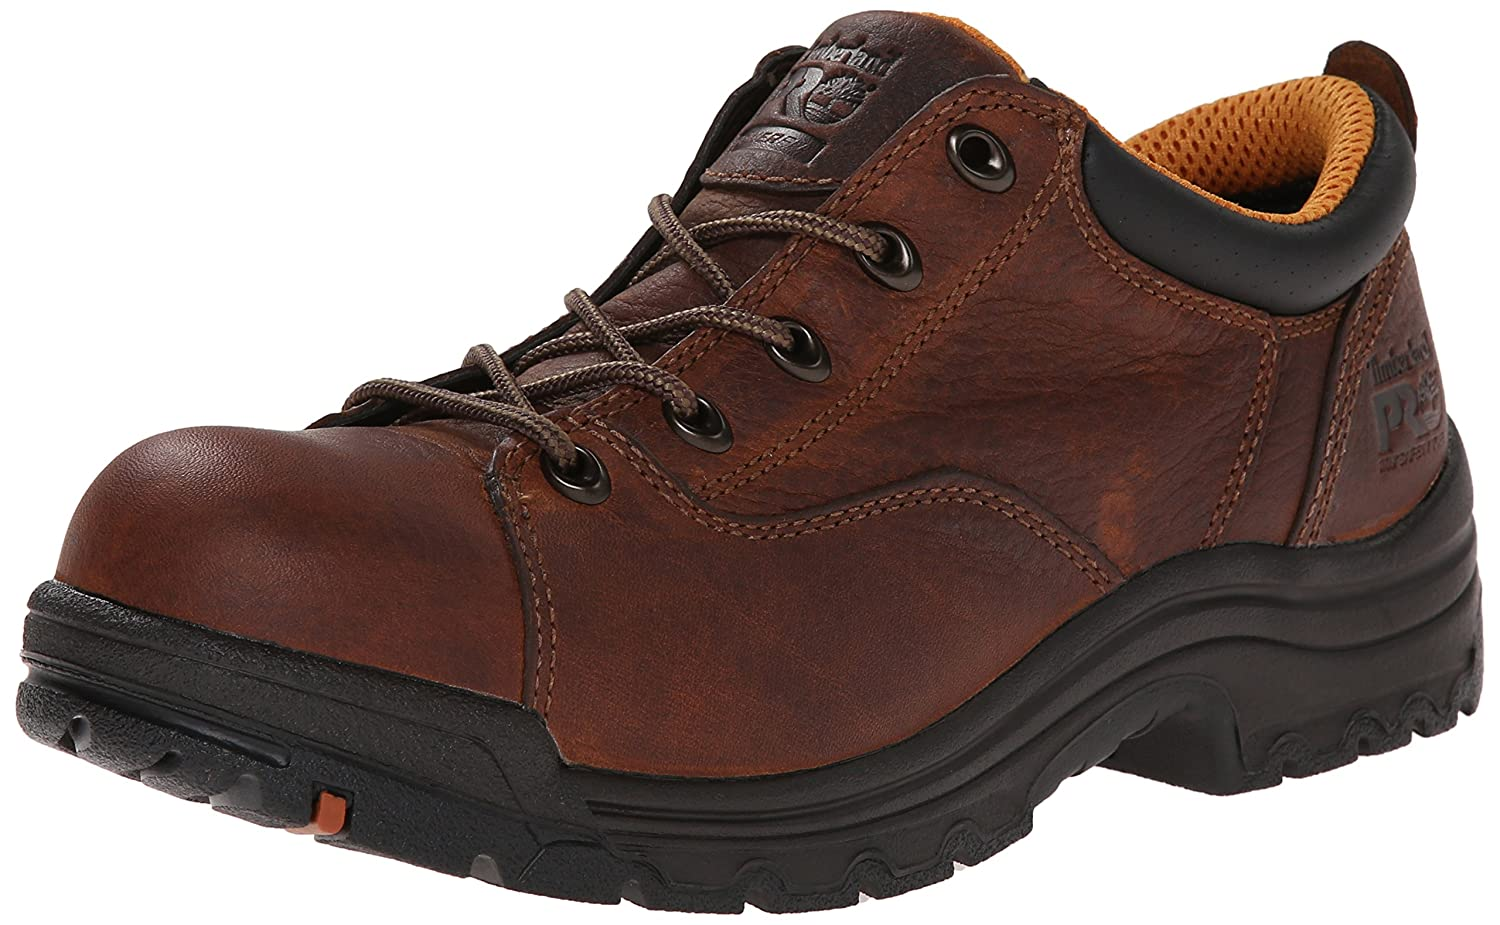 timberland-pro-women's-63189-titan-steel-toe-work-shoes